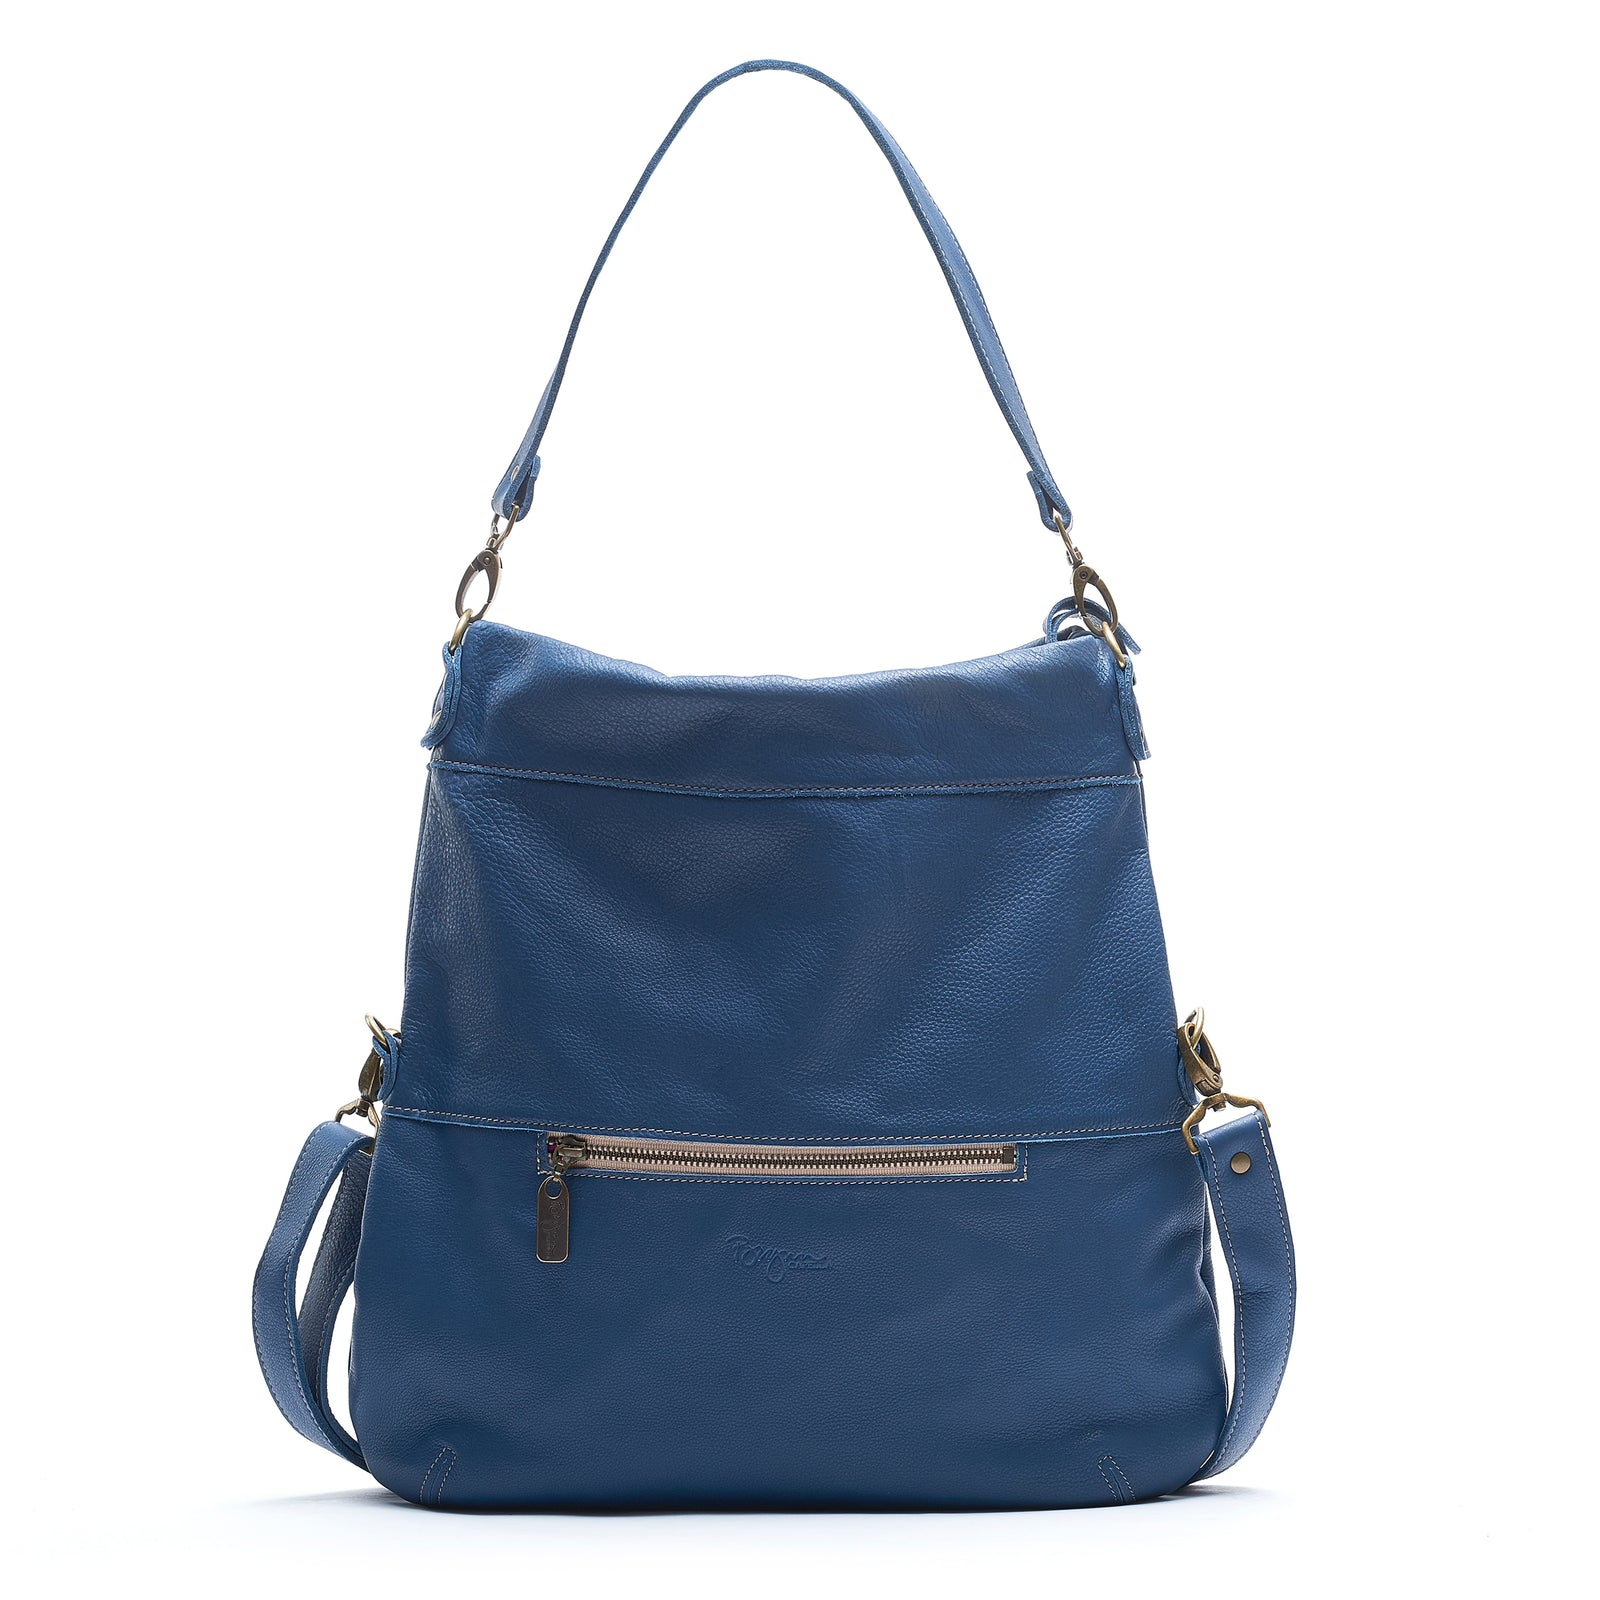 Lauren Crossbody - Moorea Bay - Brynn Capella, Large Crossbody